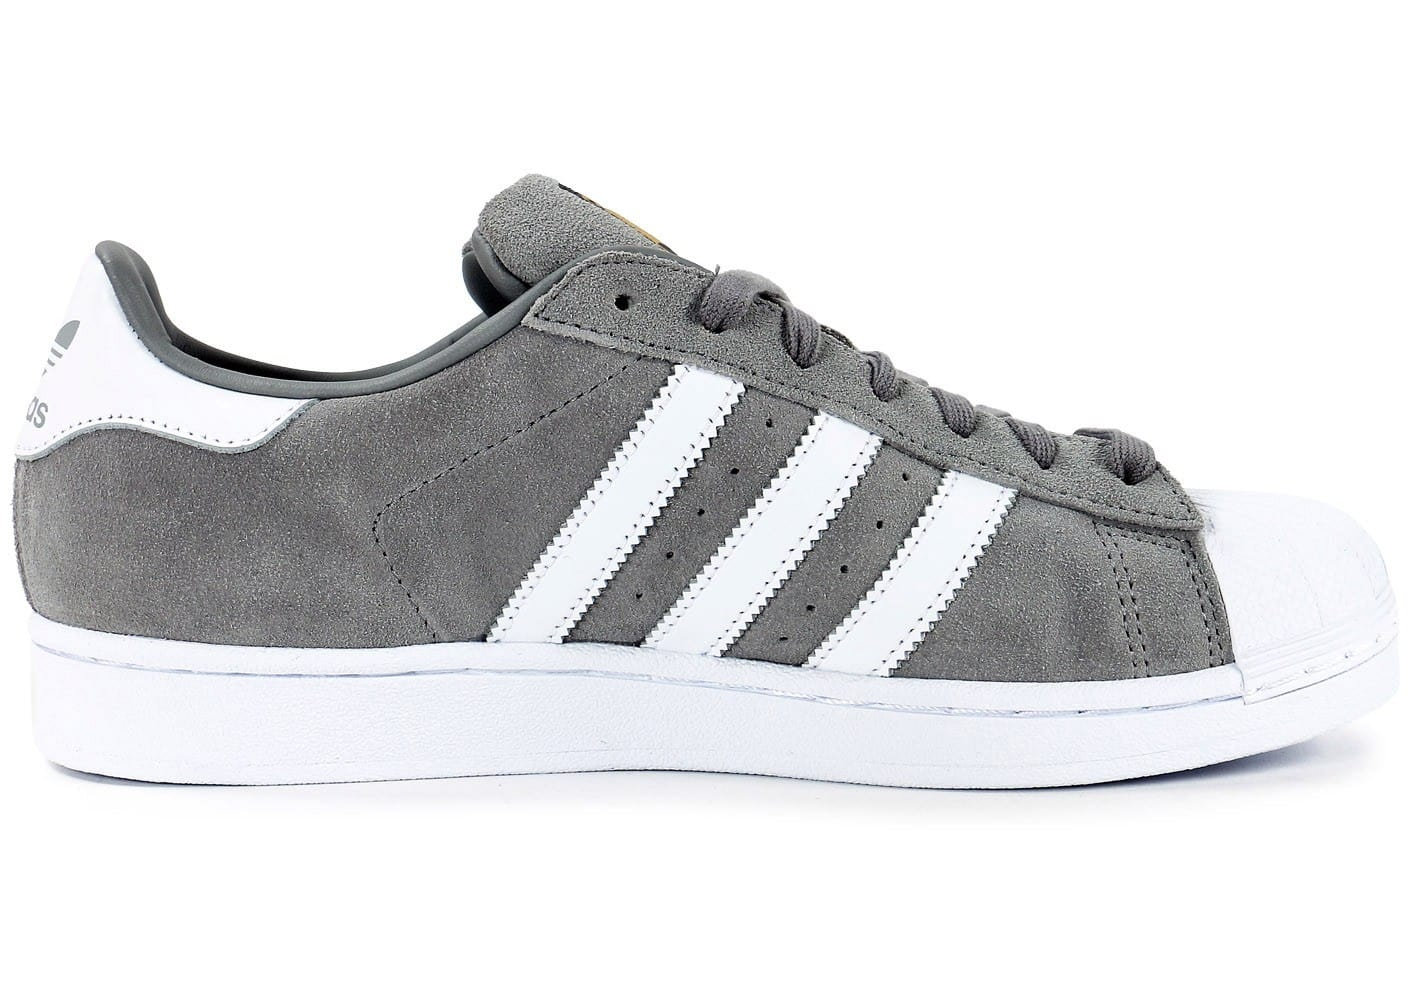 ... Chaussures adidas Superstar Suede grise vue dessous ...